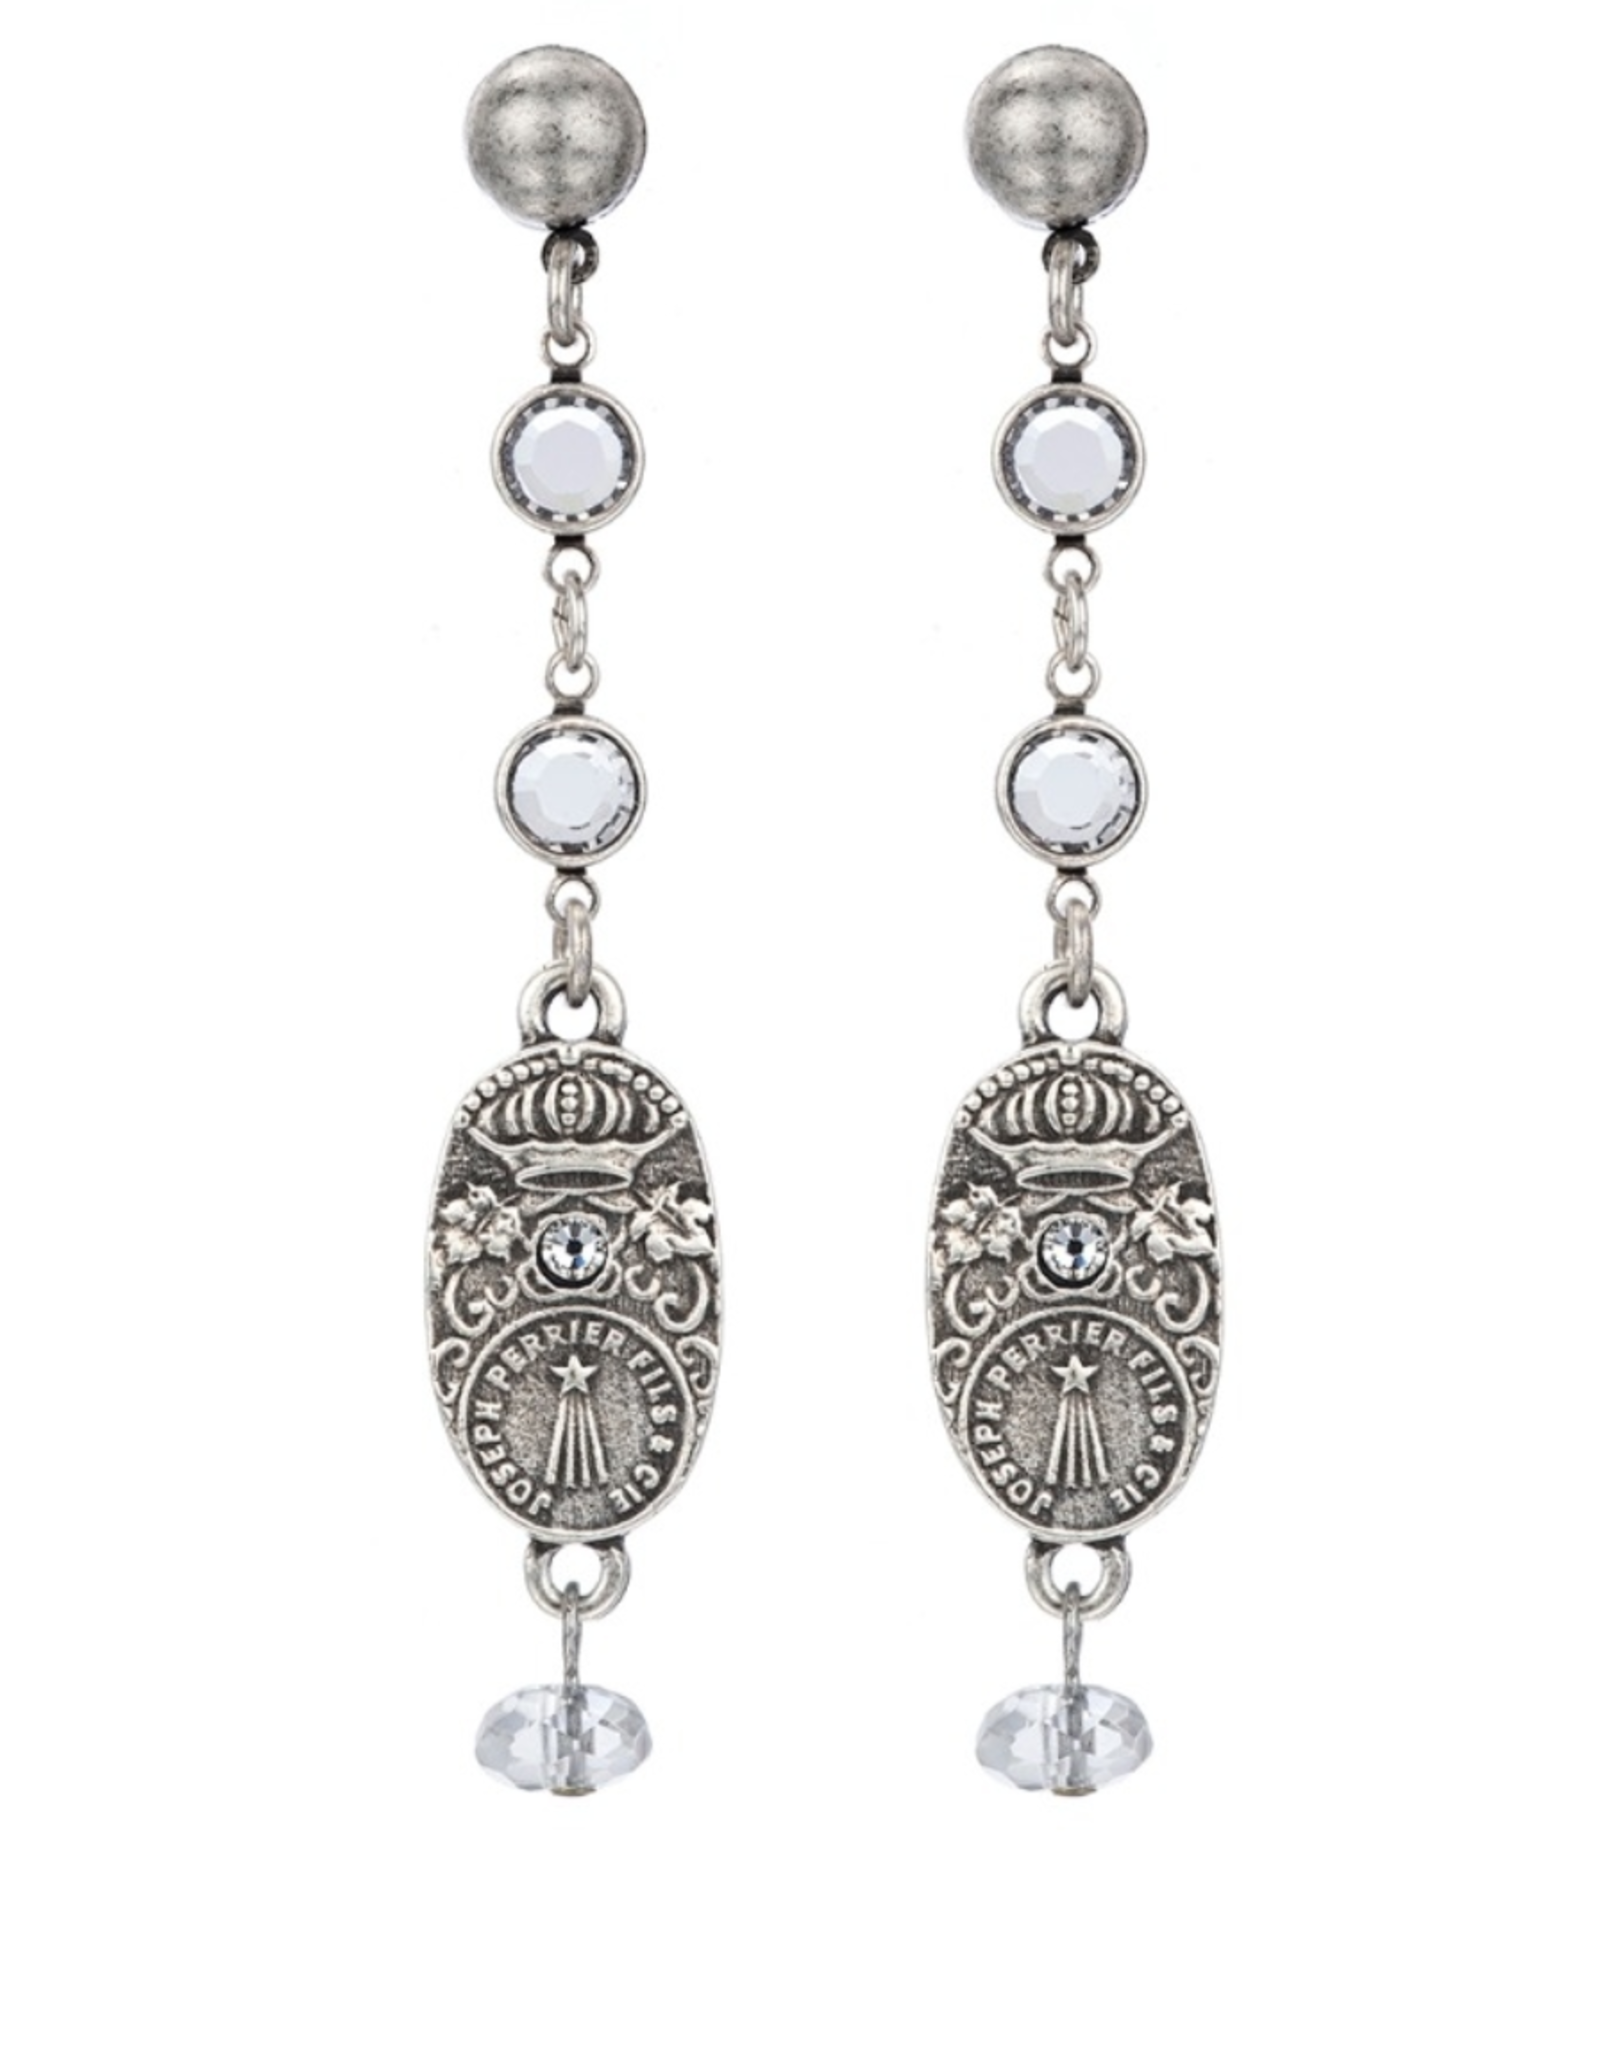 French Kande Crystal Chanel Swarovski Drop Earring